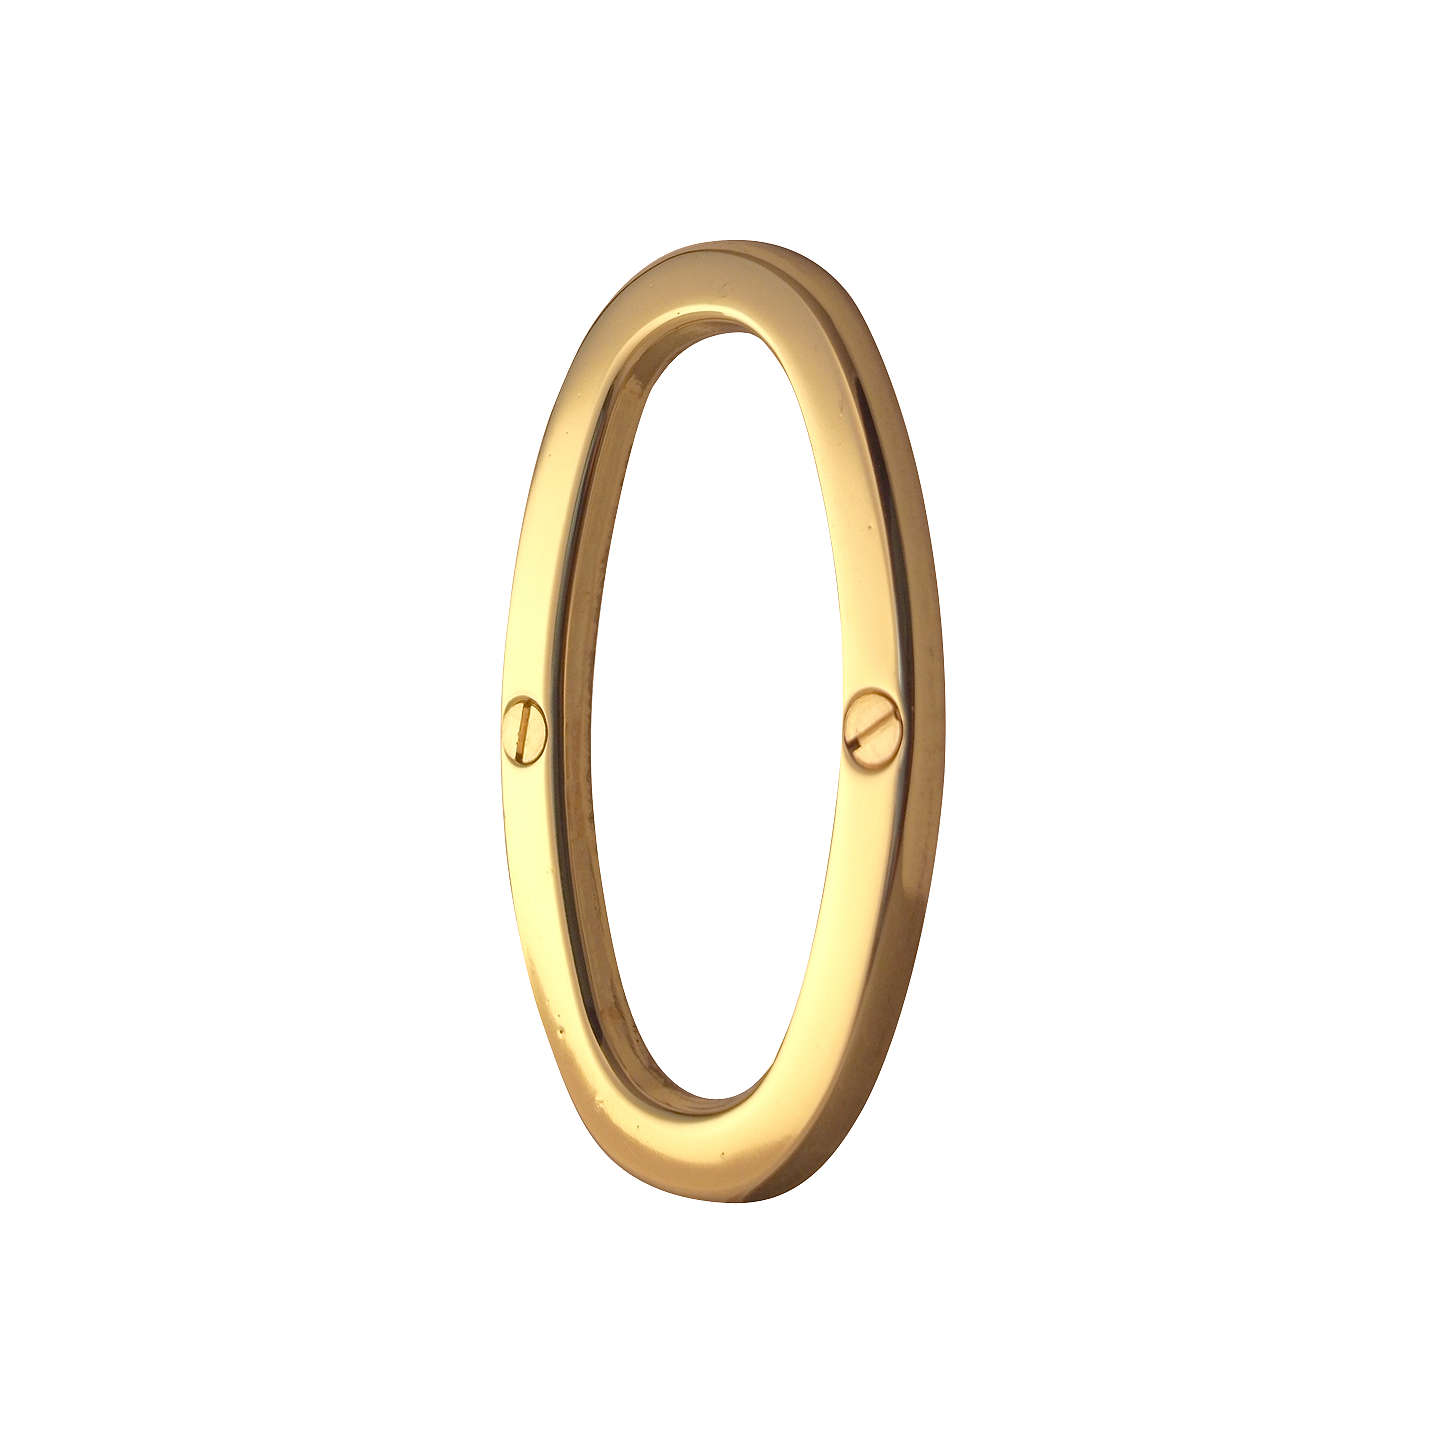 BuyJohn Lewis Door Numeral Polished Brass 1 Online at johnlewis.com  sc 1 st  John Lewis & John Lewis Door Numerals | Polished Brass at John Lewis